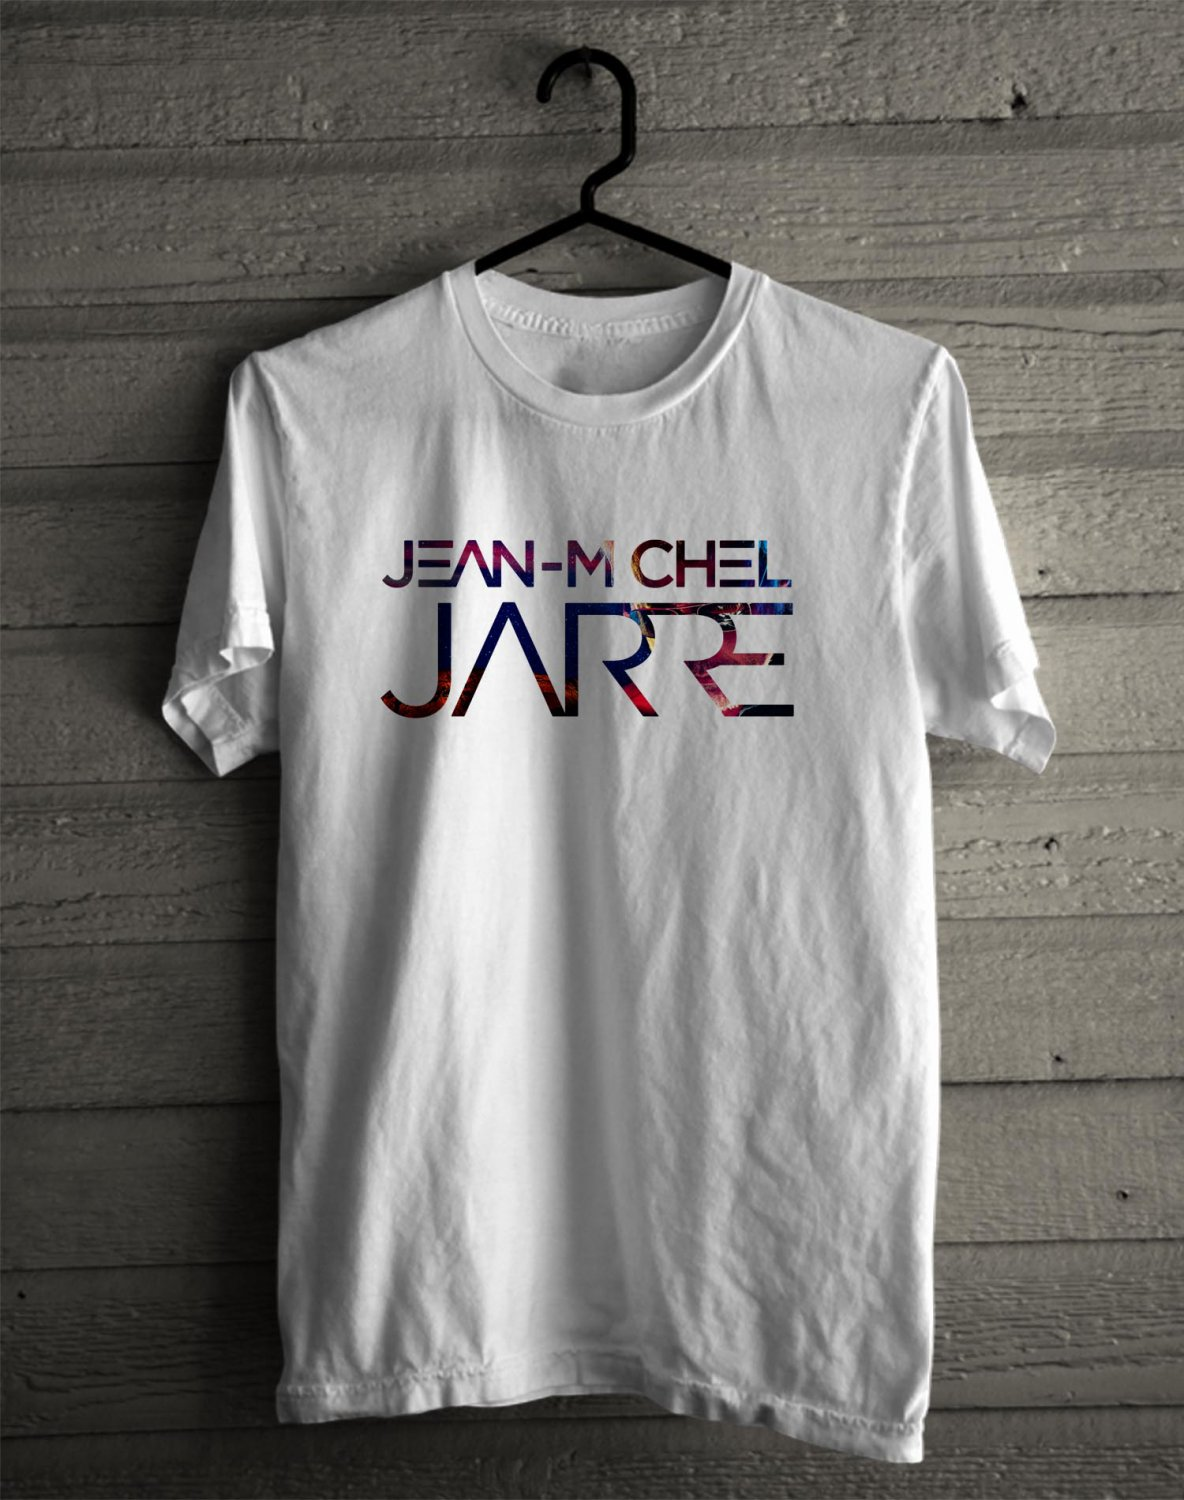 Jean-Michel Jarre Tour 2017 White Tee's Front Side by Complexart